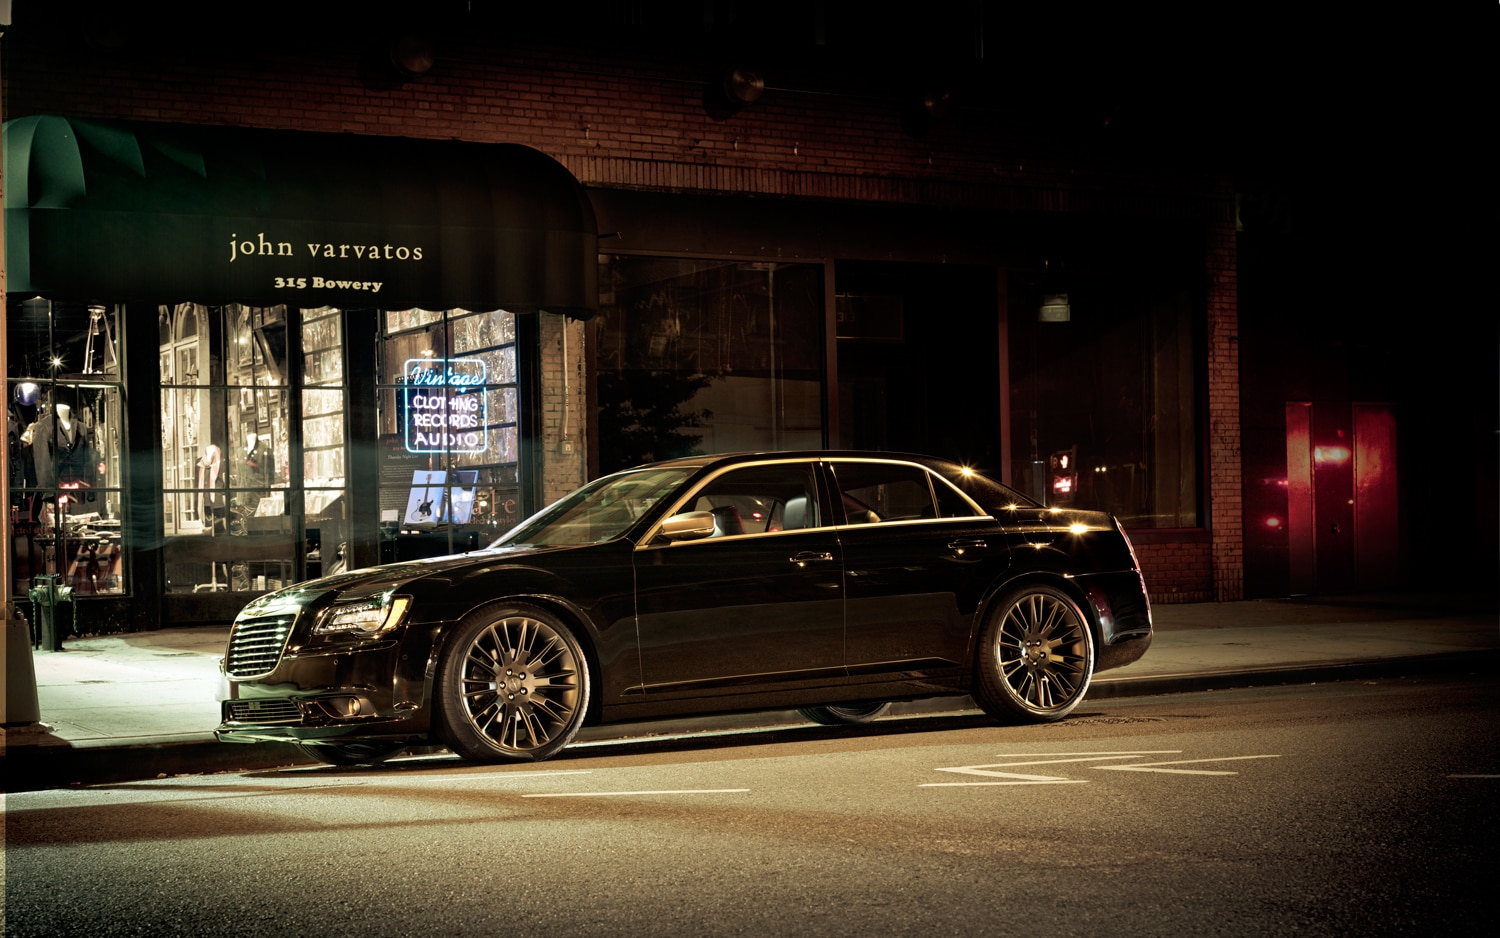 2013 Chrysler 300C John Varvatos Limited Edition Profile1